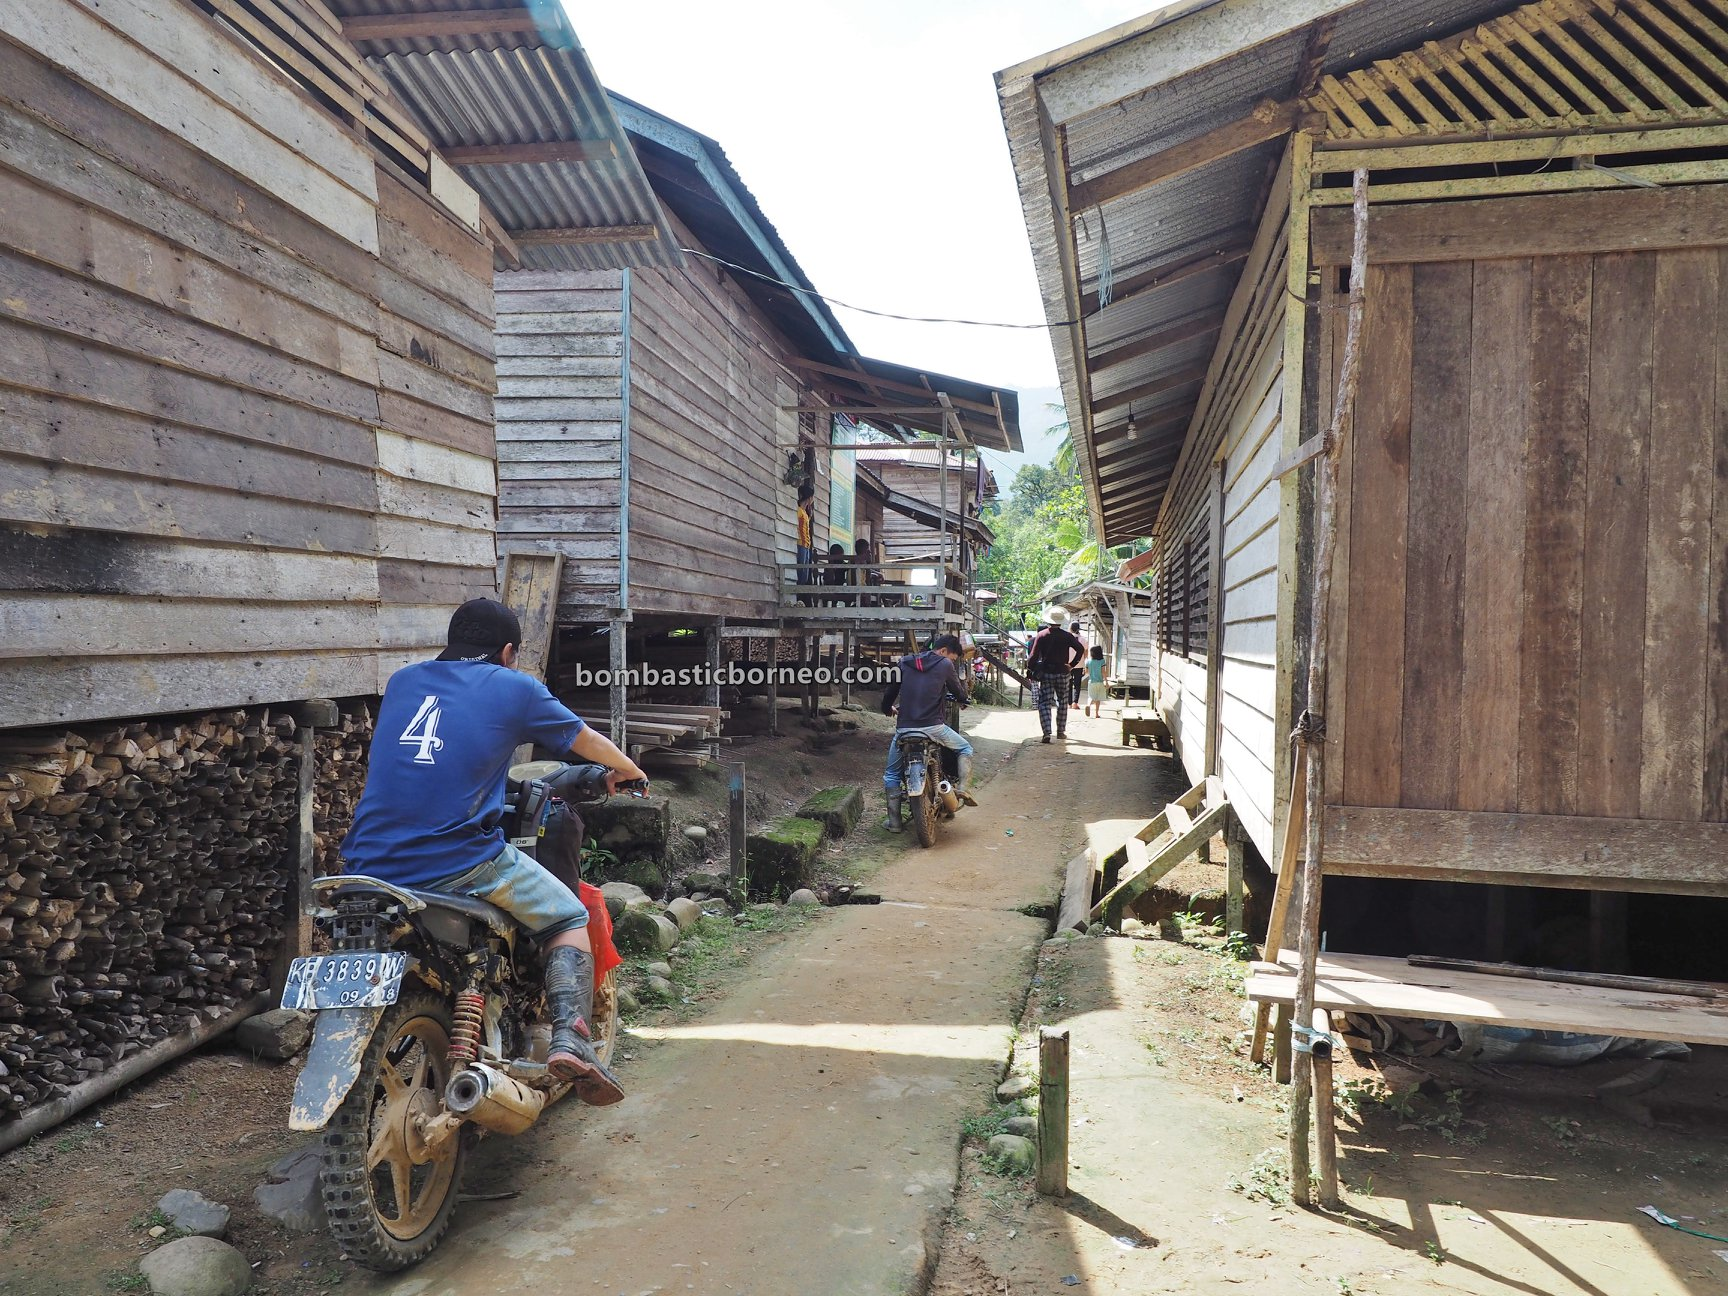 Dusun Medeng, adventure, authentic, traditional, Bengkayang, Indonesia, native, Highland, Tourism, travel guide, Cross Border, Borneo, 探索婆罗洲游踪, 印尼西加里曼丹, 孟加映达雅部落